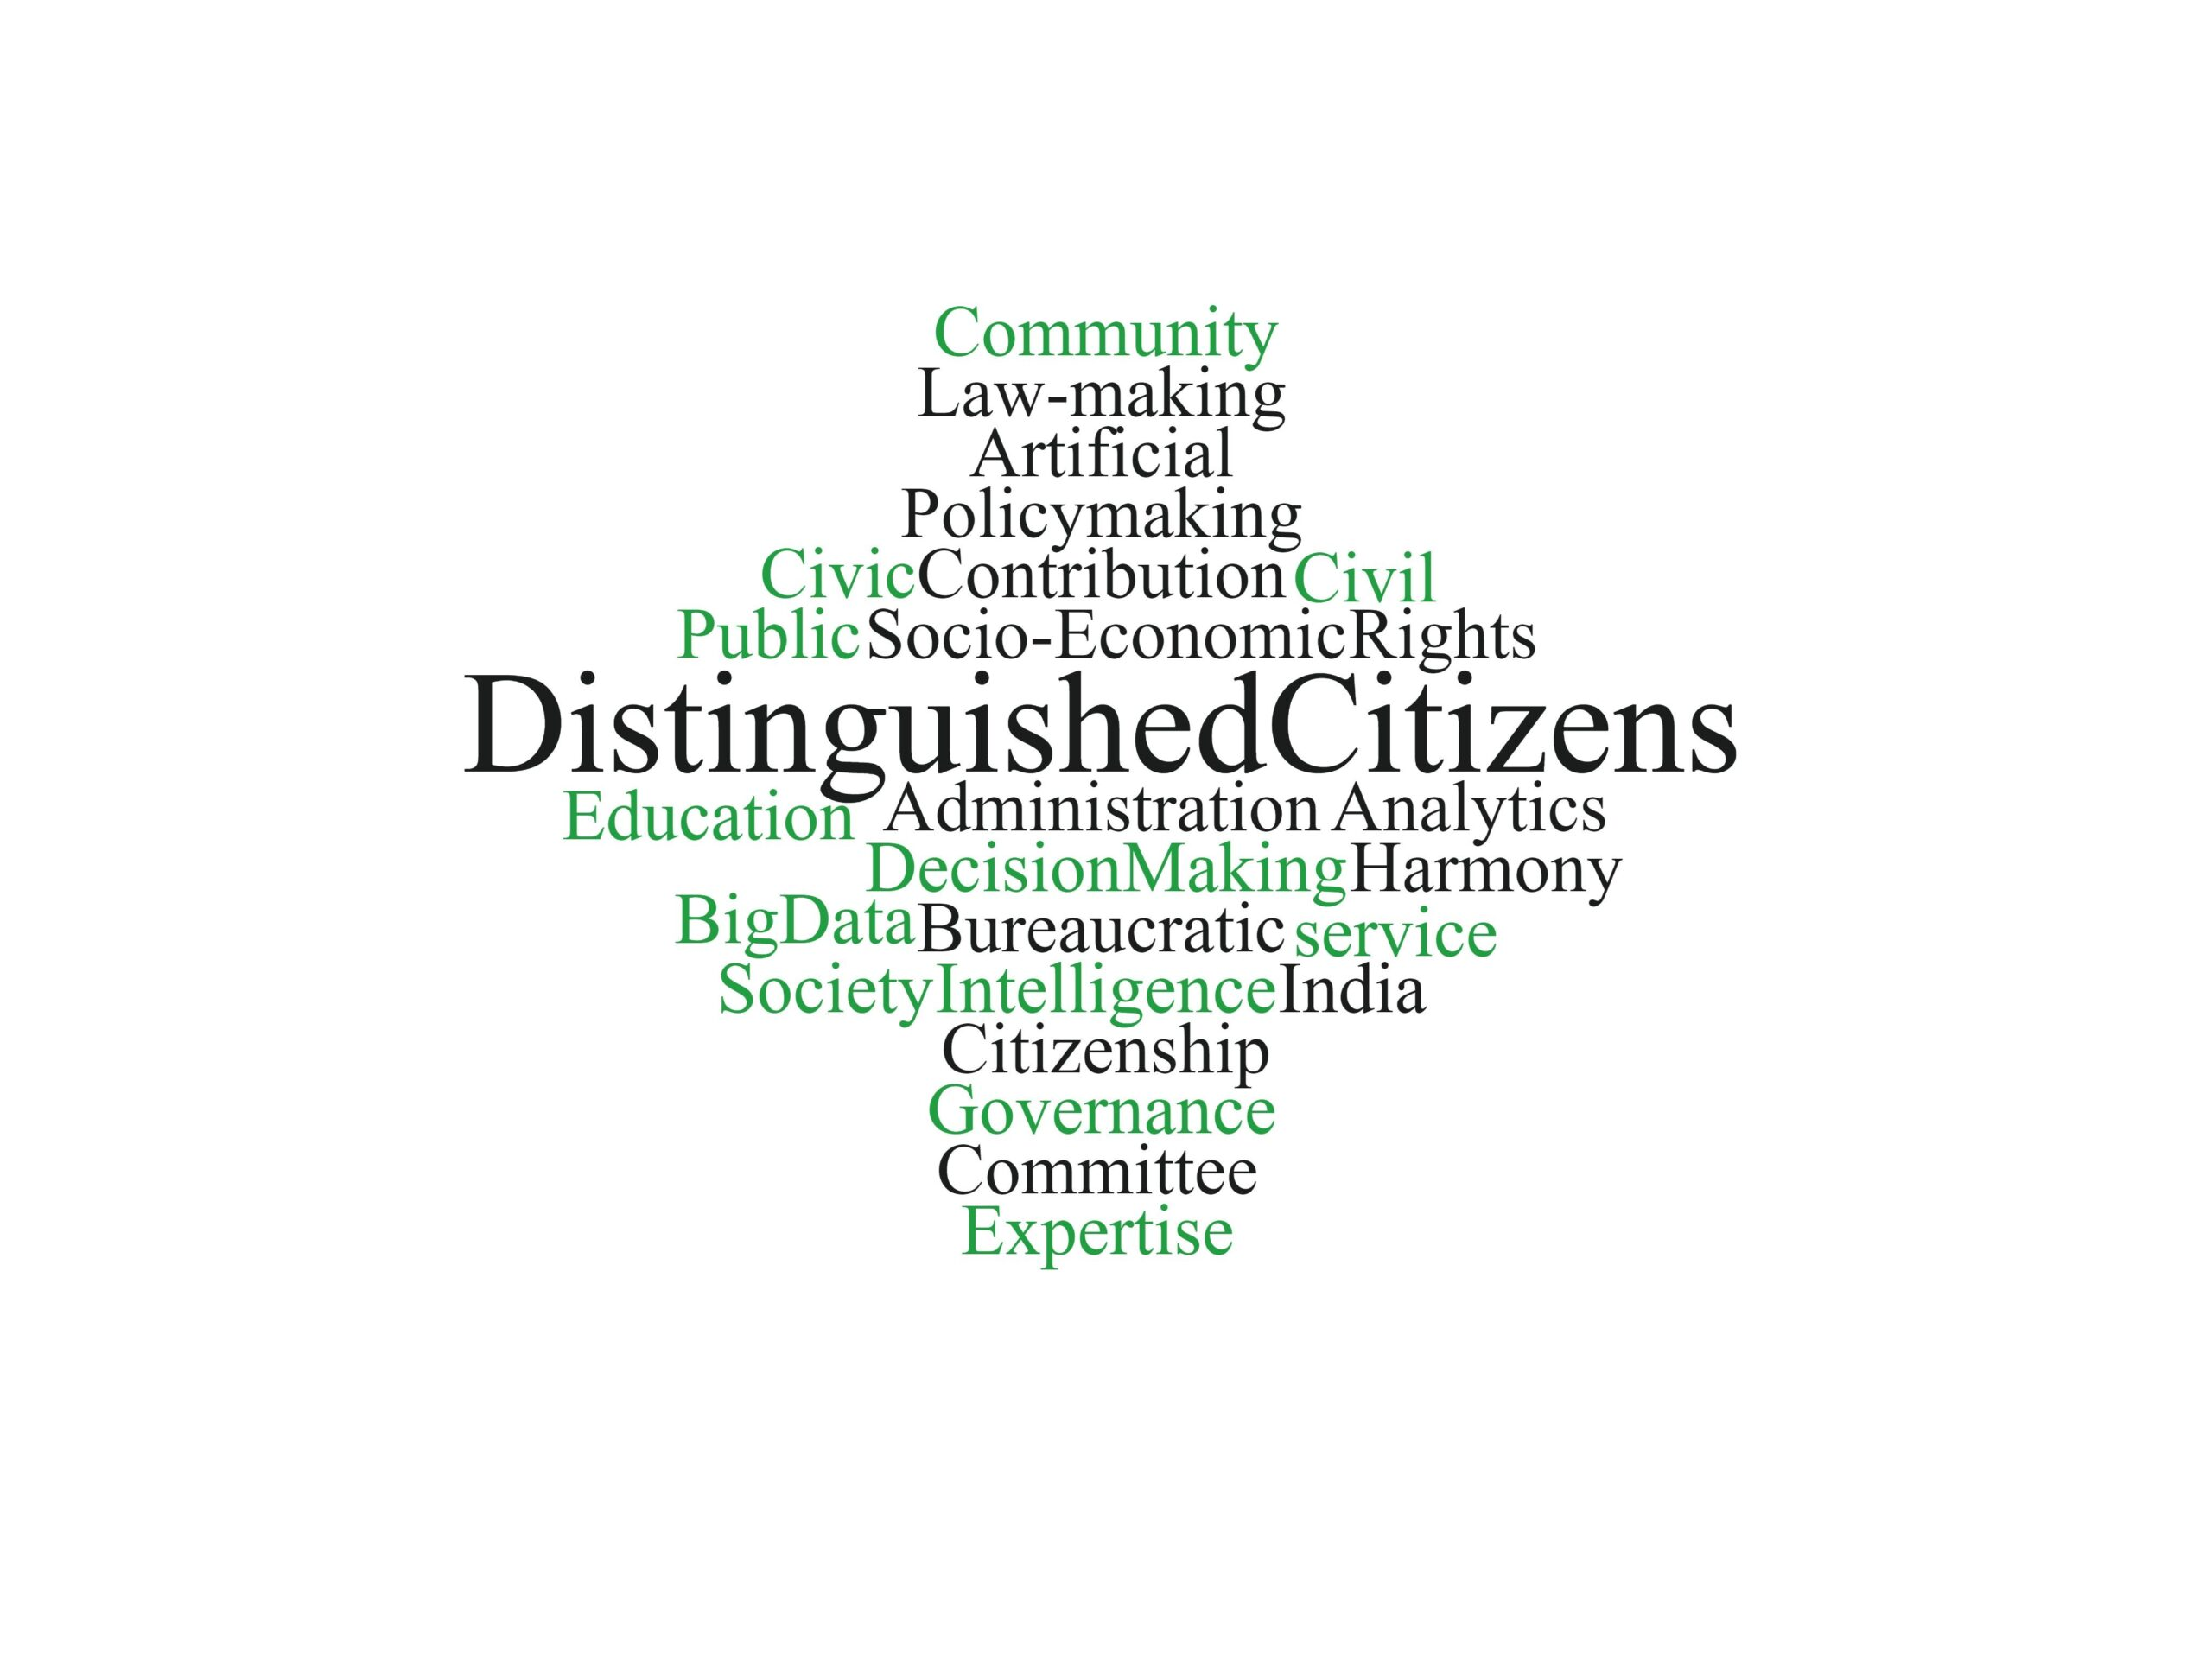 Distinguished Citizens Committee (India)